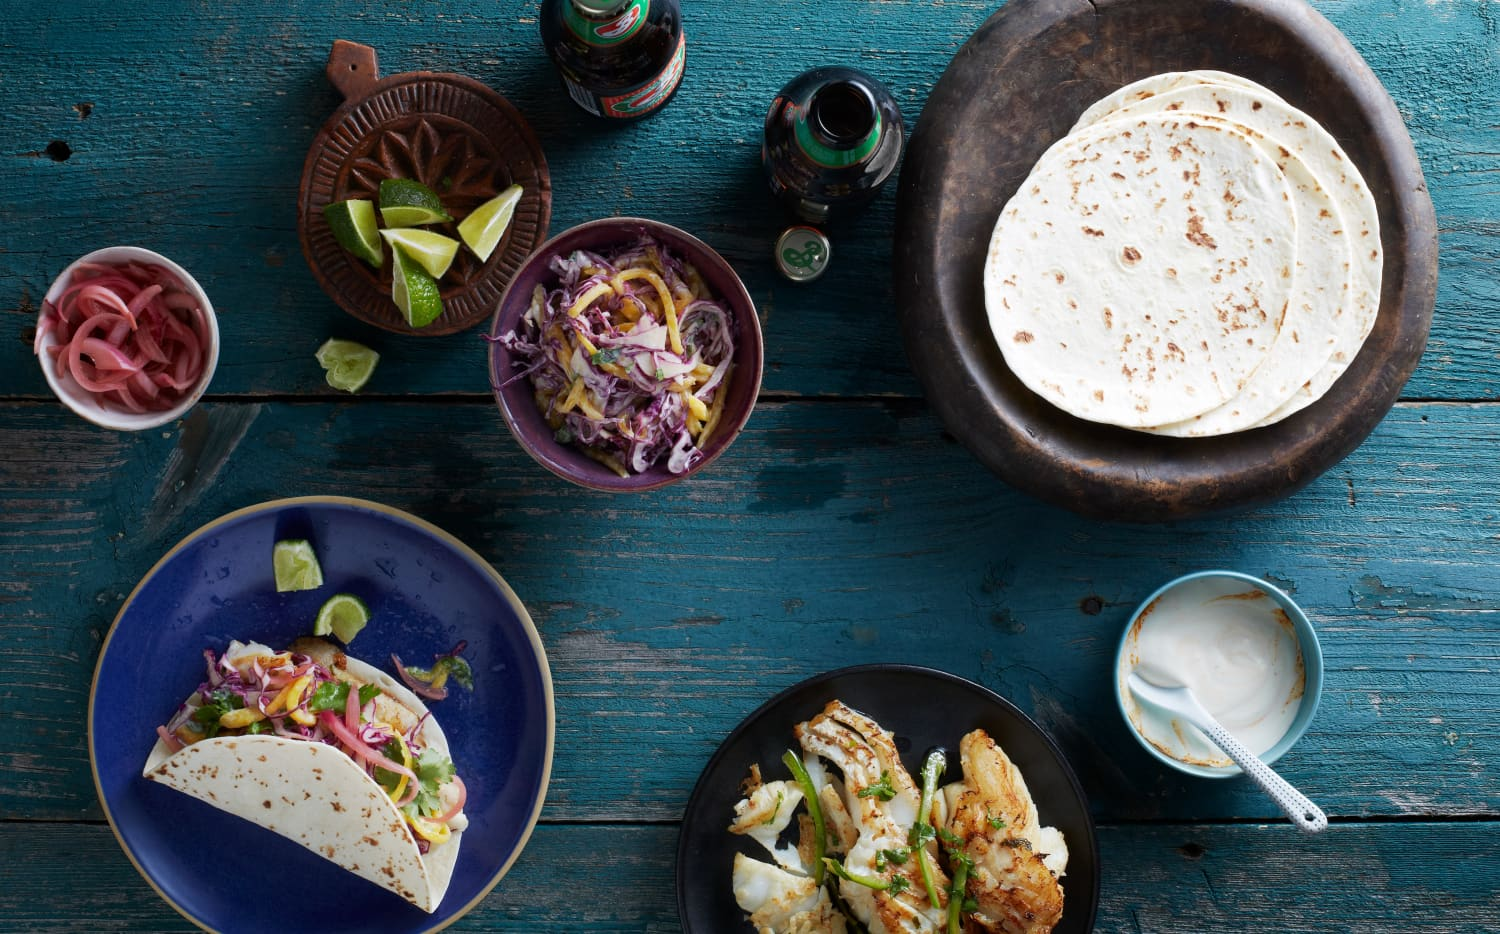 These Seared Fish Tacos Are the Easy Meal You Crave